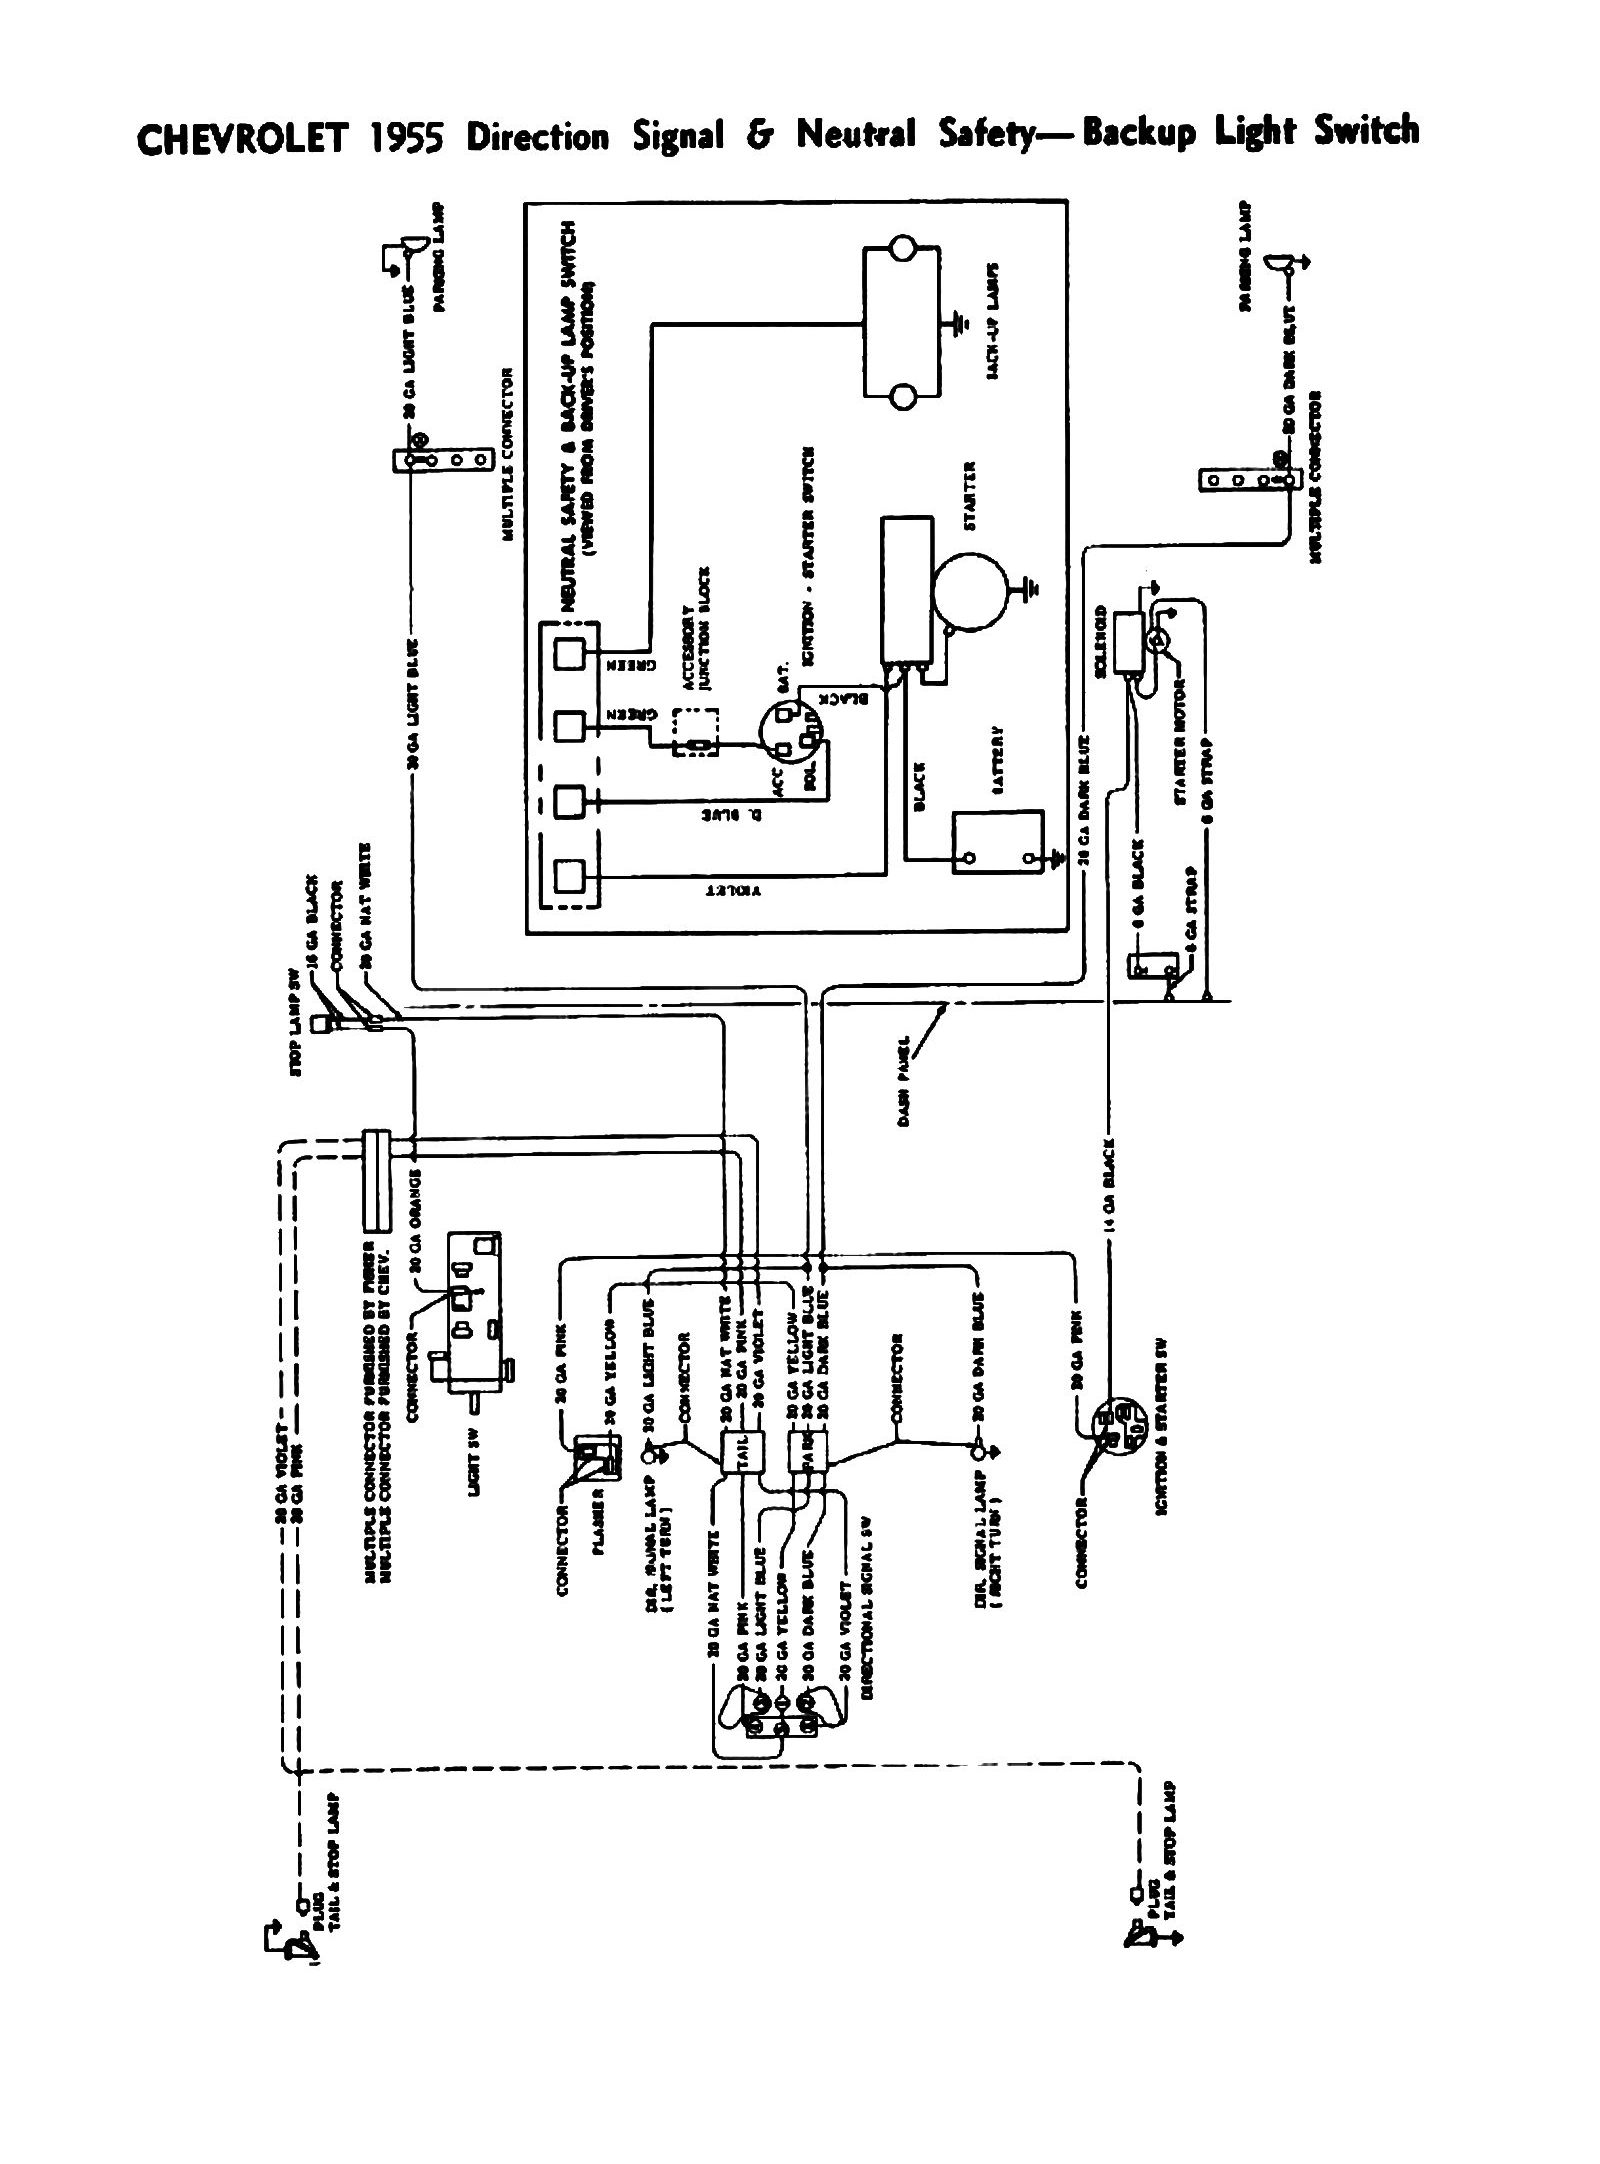 55signal chevy wiring diagrams 1965 chevy c10 starter wiring diagram at webbmarketing.co